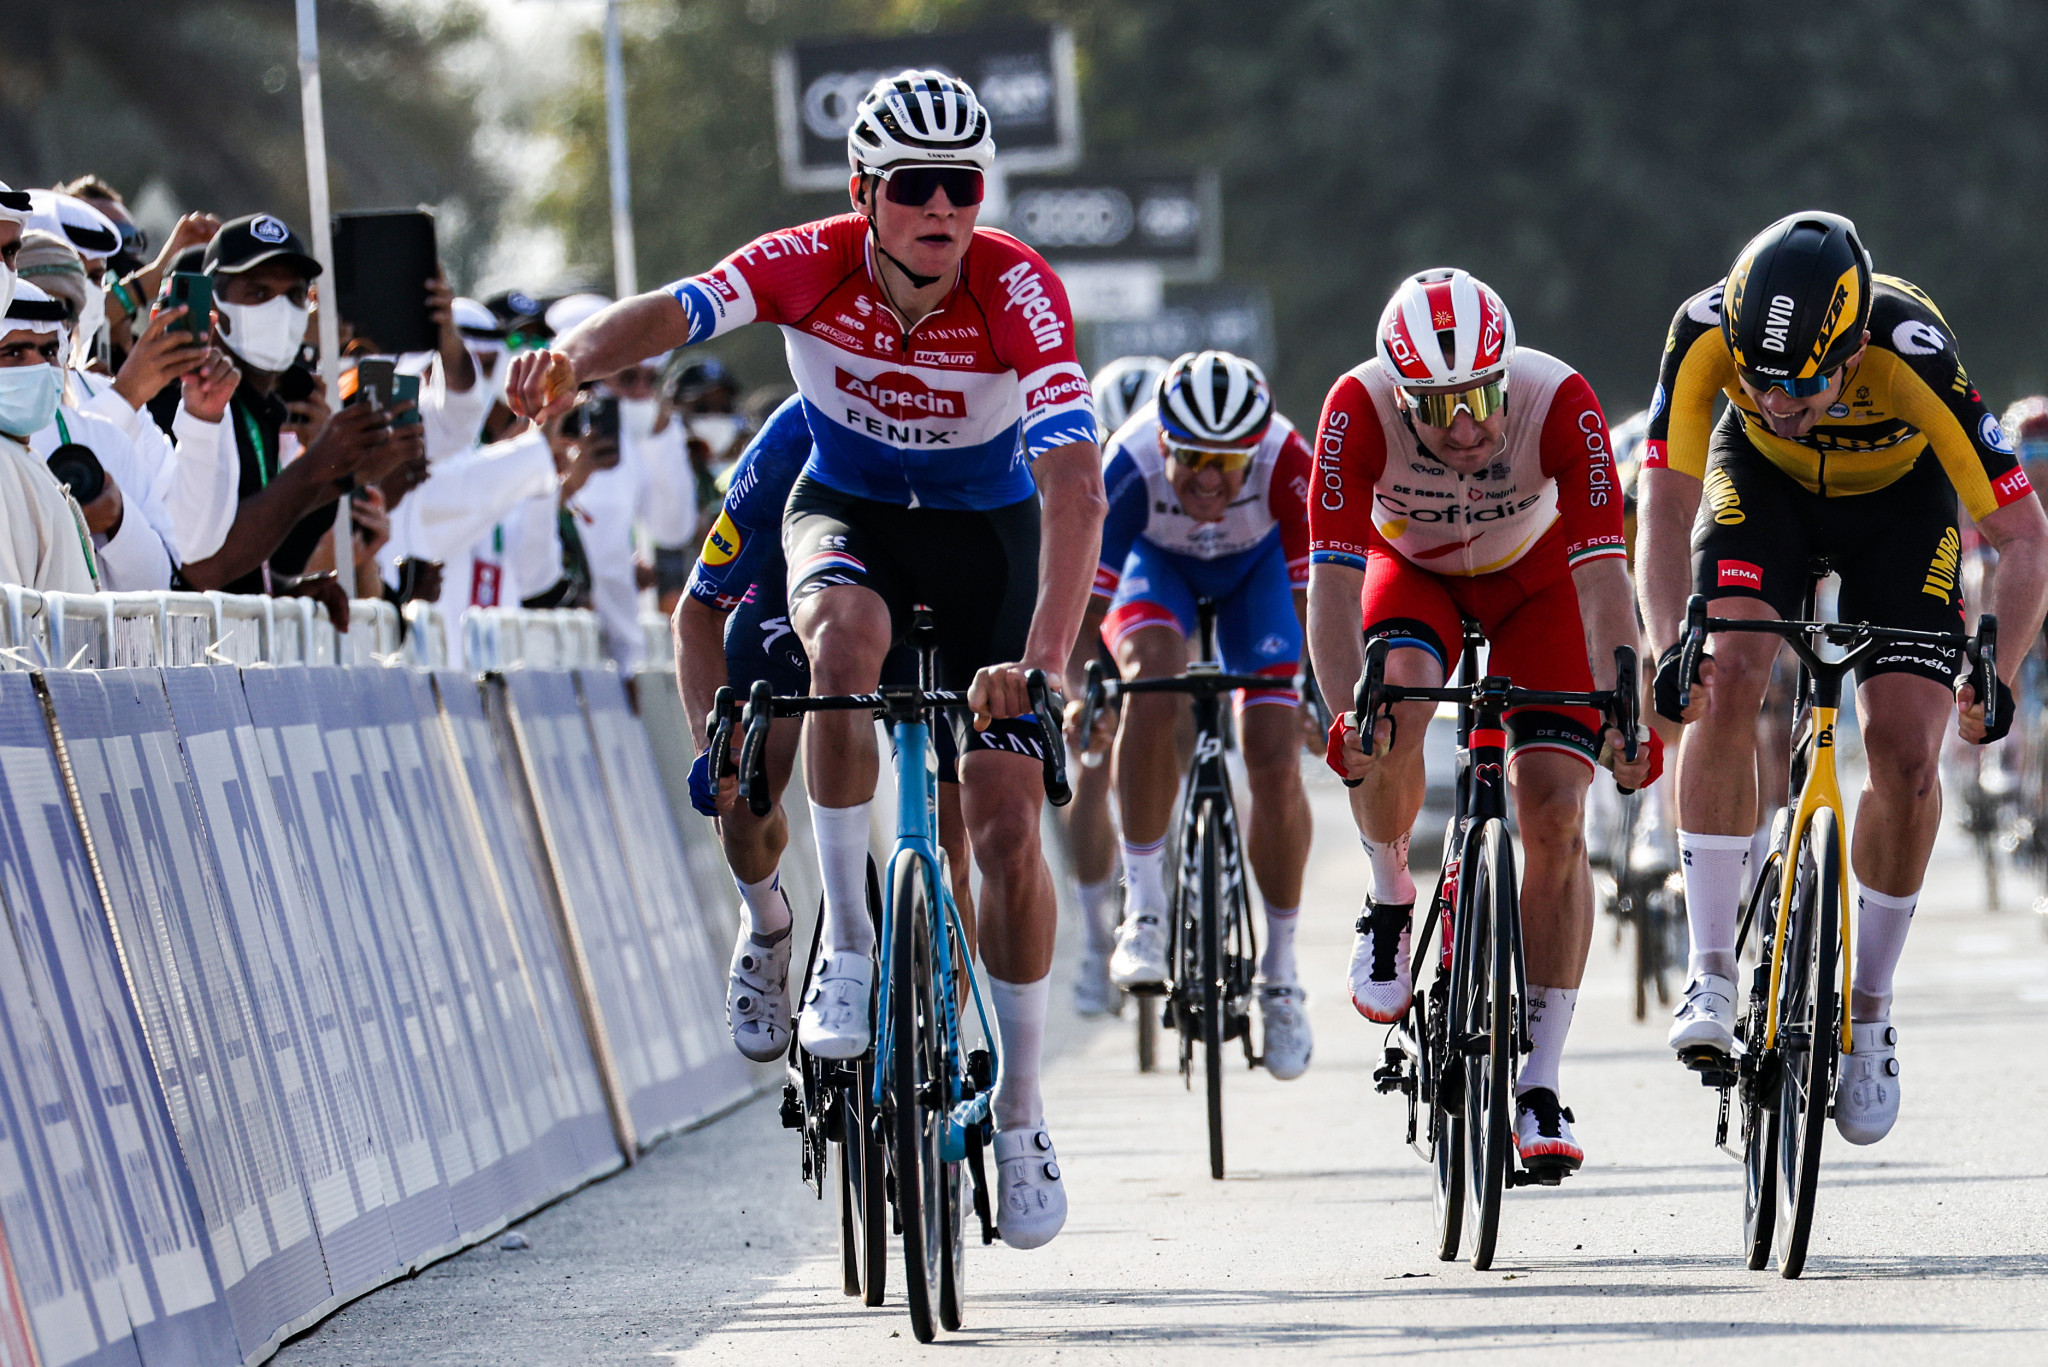 Mathieu Van der Poel came out on top in the sprint for the line to win the opening stage of the UAE Tour ©Getty Images